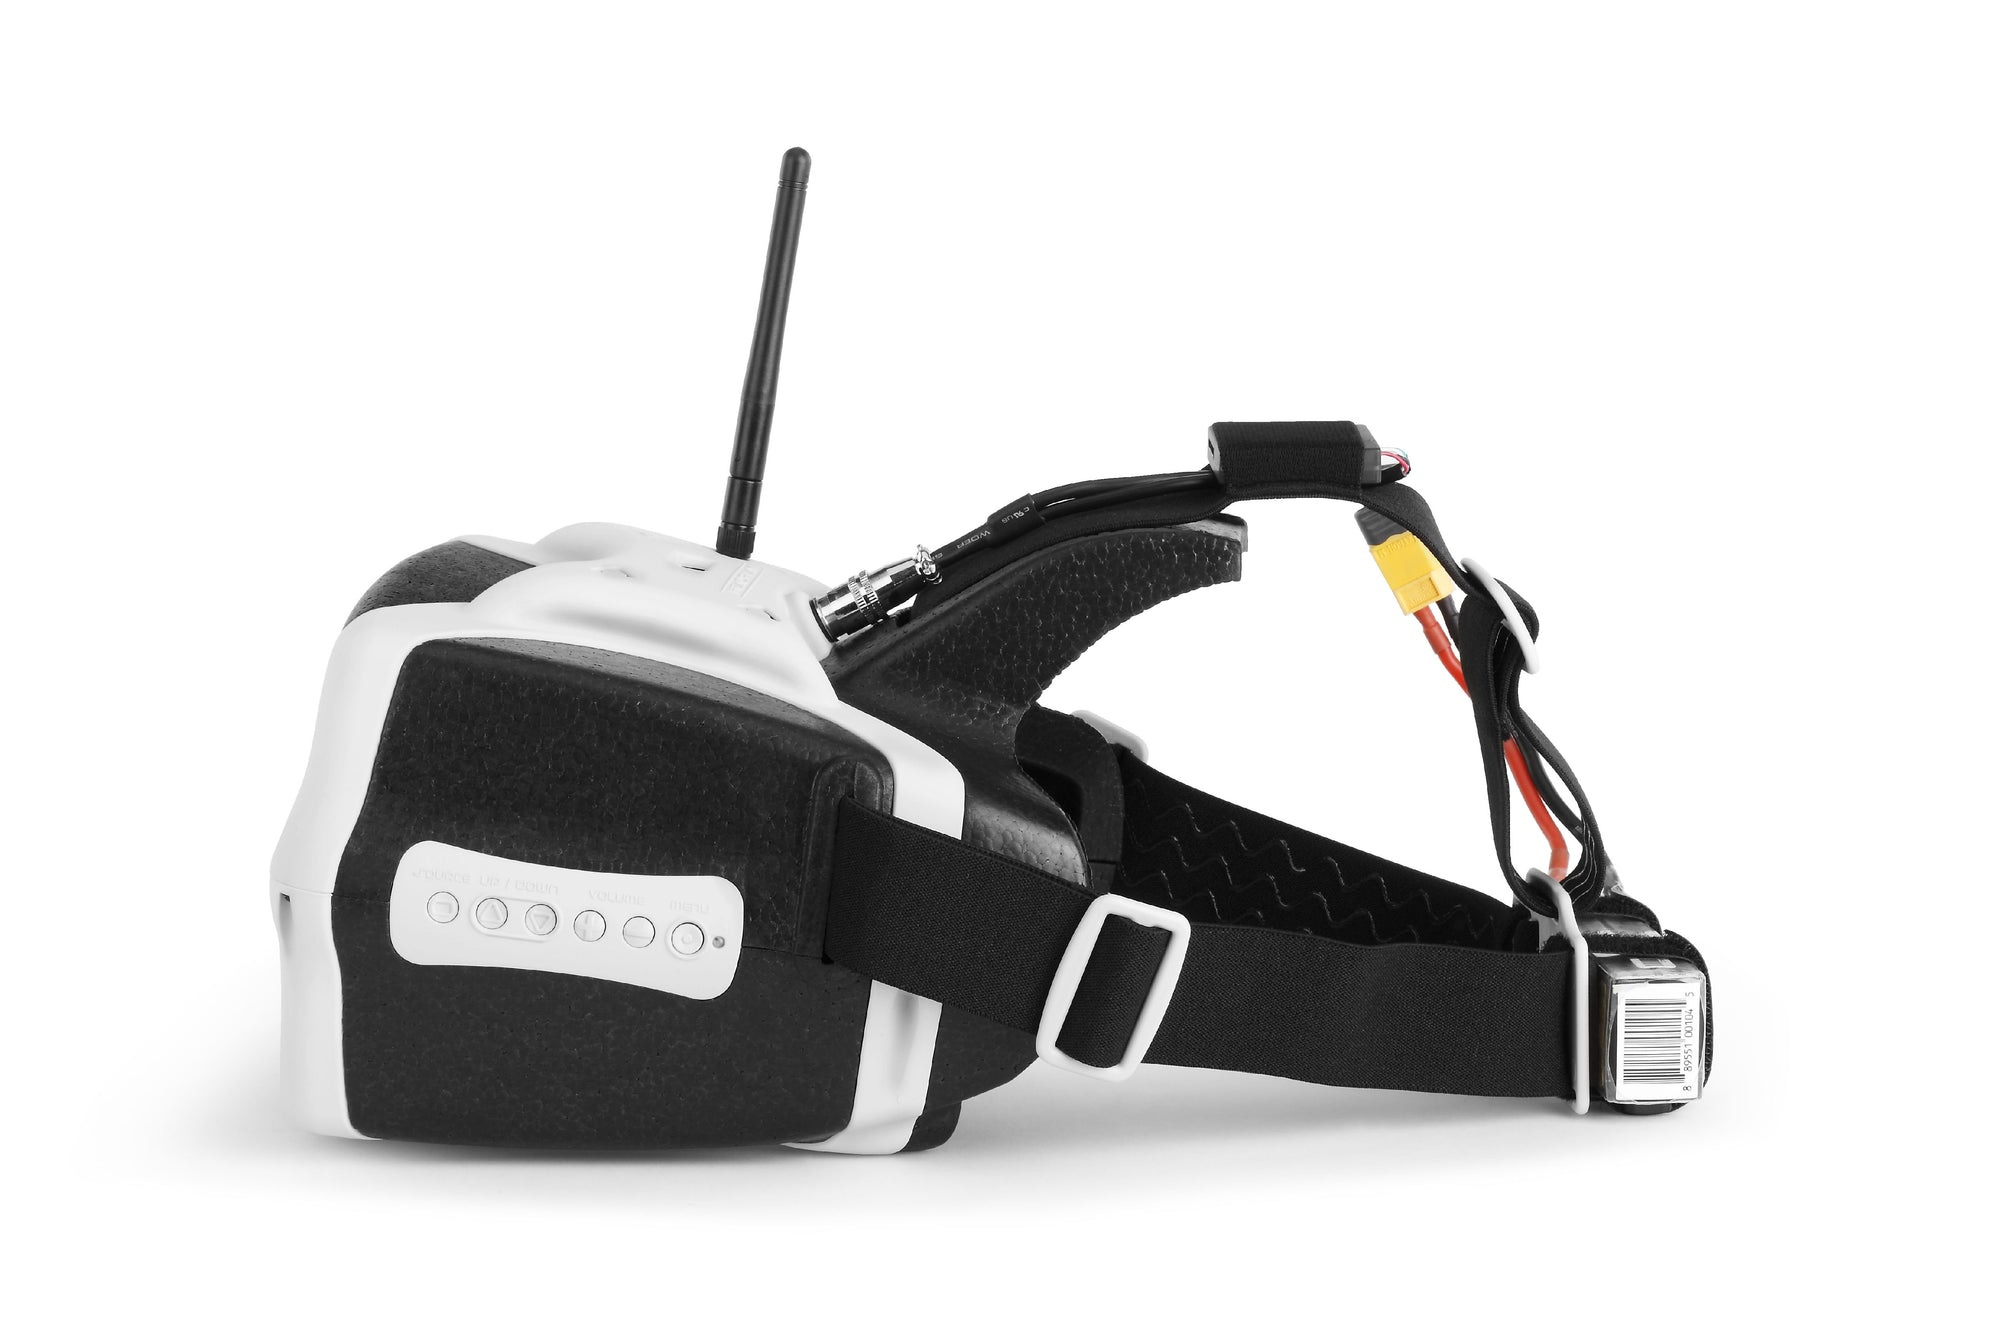 Headplay 1024 x 600 px Head Mounted Display with  5.8GHz receiver and HDMI input